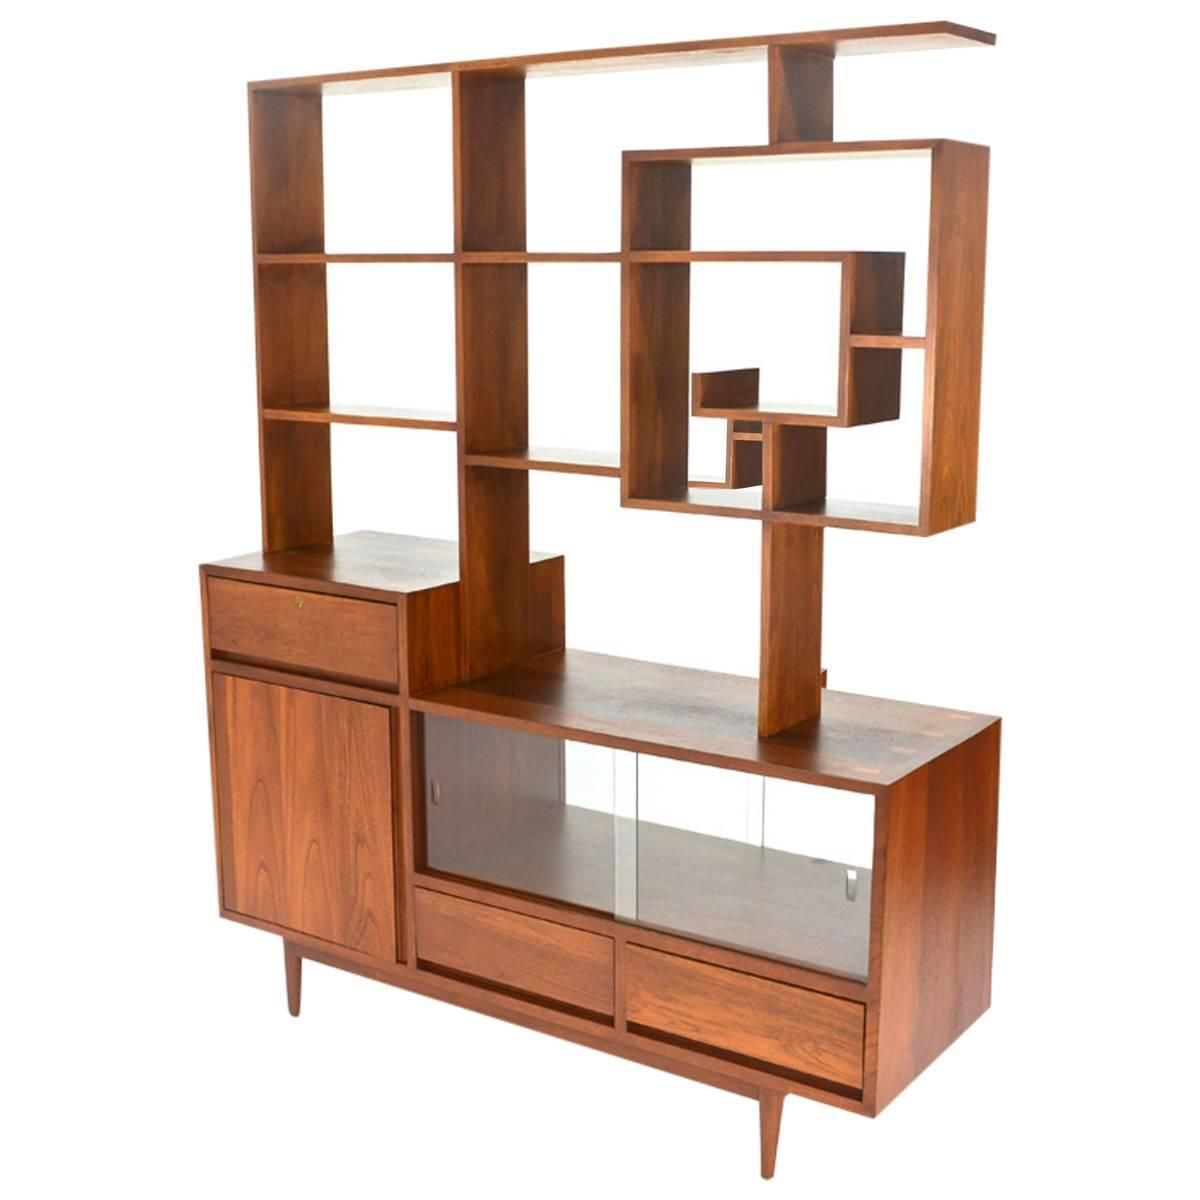 Mid Century Basement: Incredible One Of A Kind Room Divider Or Credenza In 2019